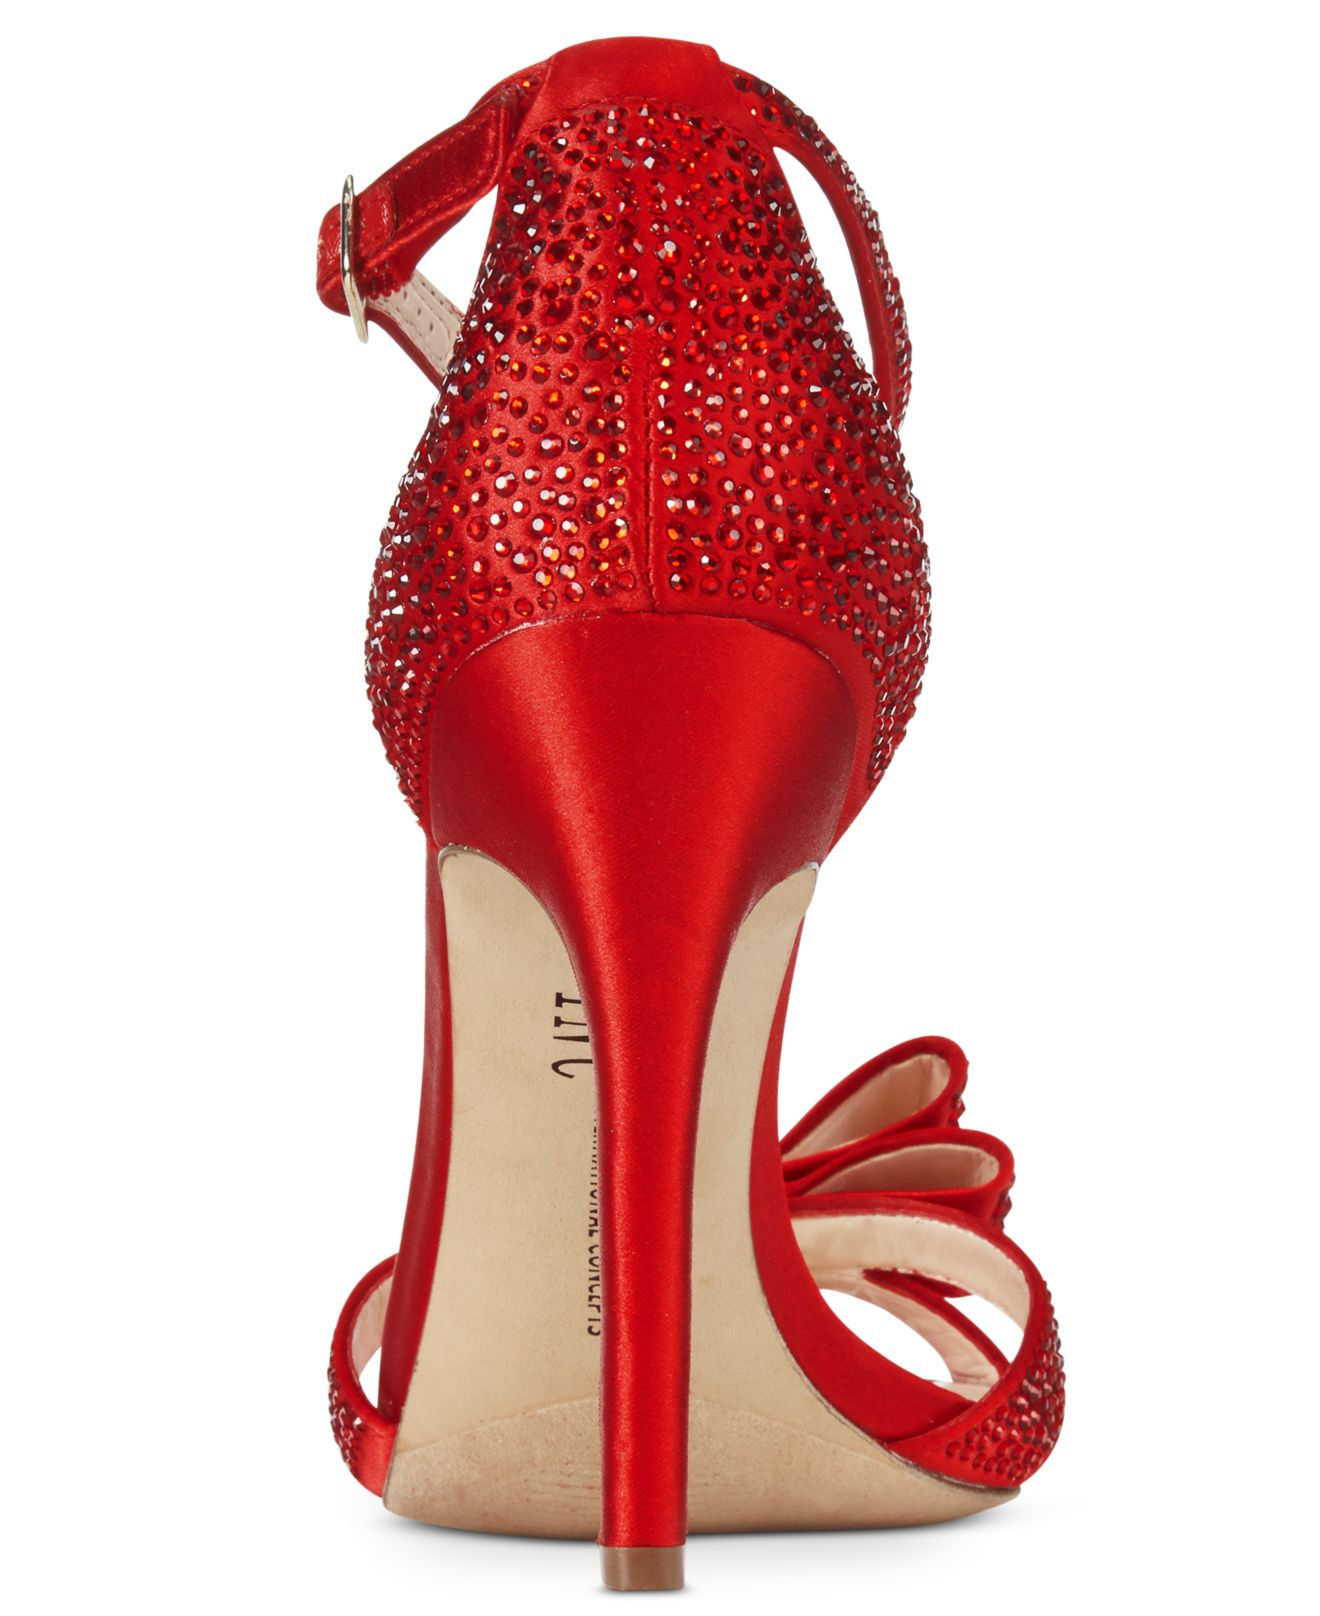 00dd48ad7a0 Lyst - INC International Concepts Reesie Evening Sandals in Red